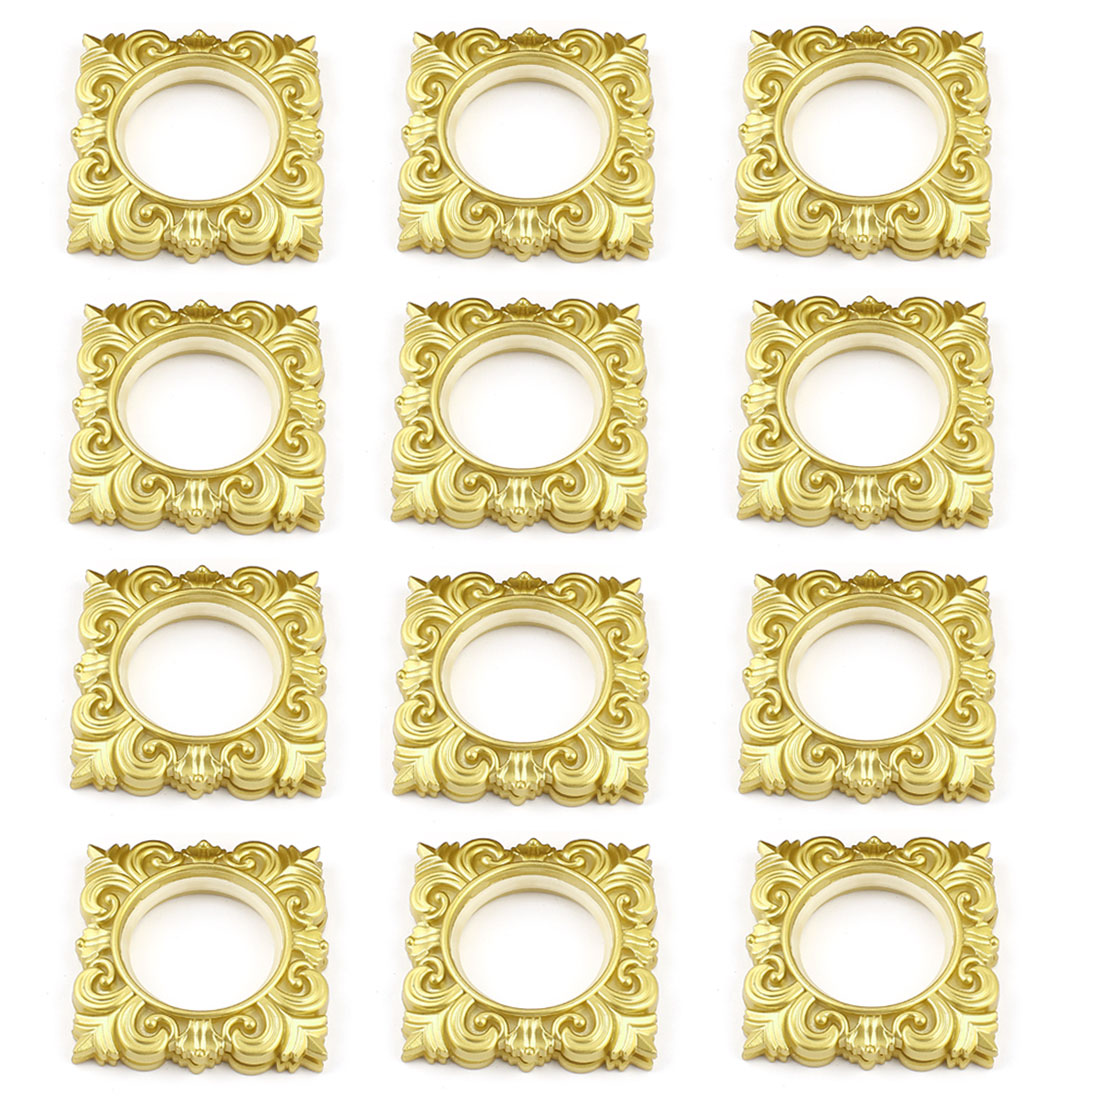 12 Pcs 45mm Inside Diameter Square Plastic Ring for Eyelet Curtain Drapery